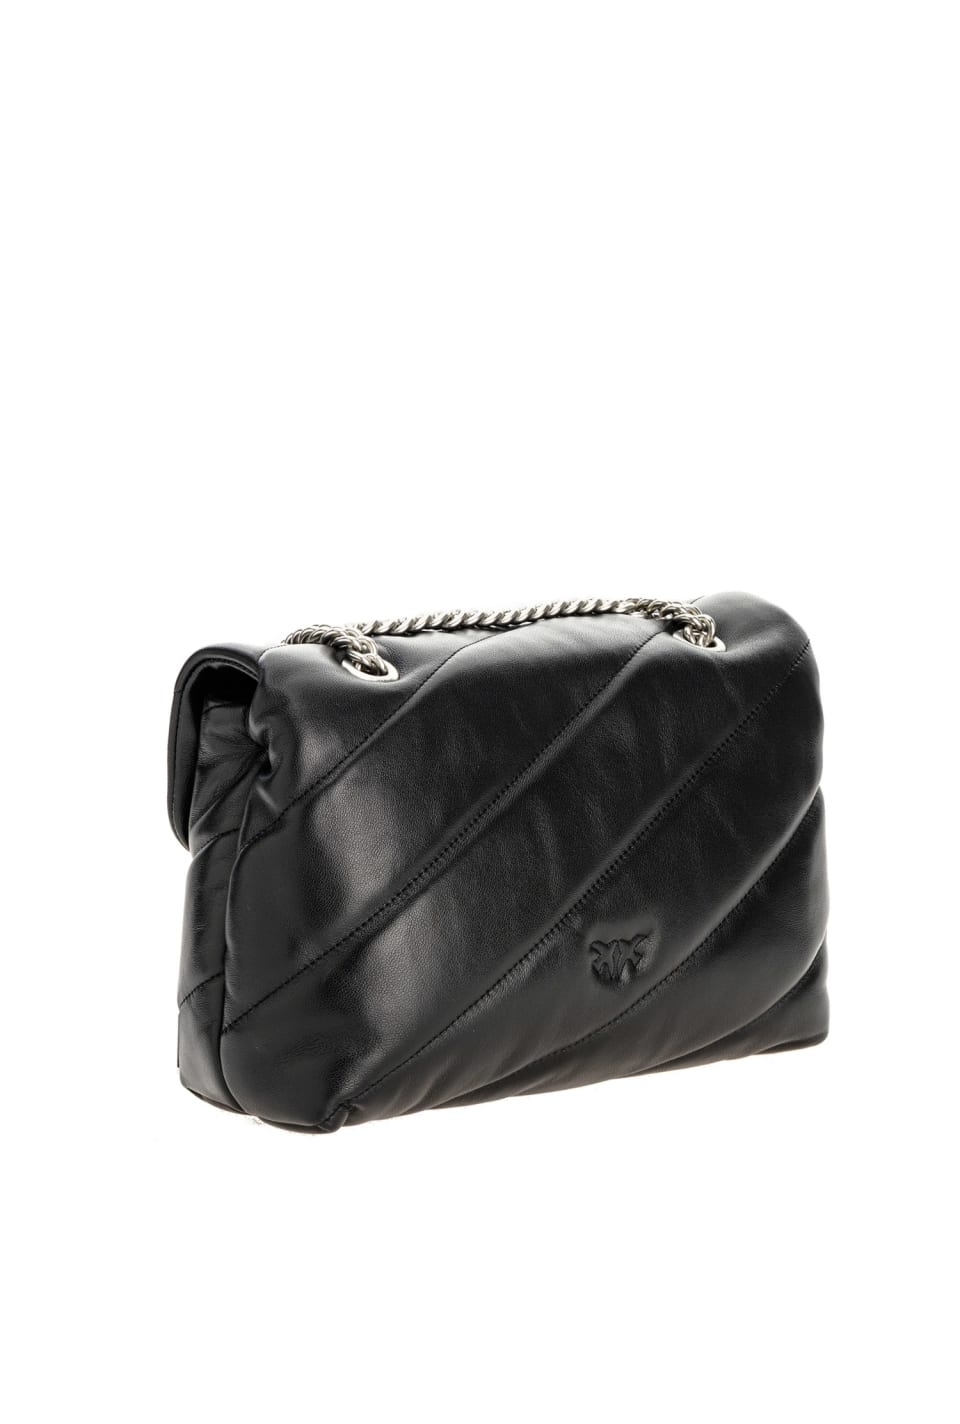 Classic Love Bag Puff Maxi Quilt in nappa leather